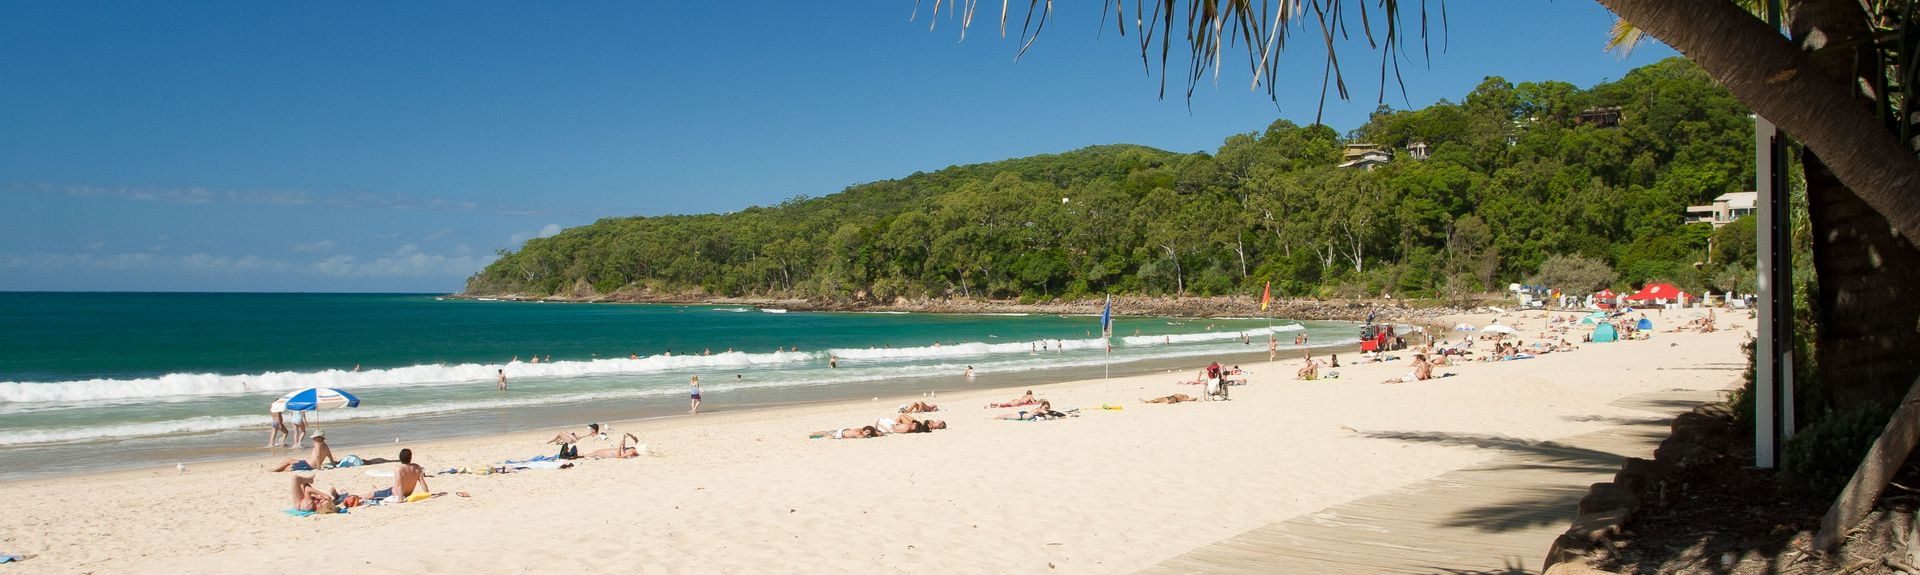 Noosa Heads, Queensland, Australia